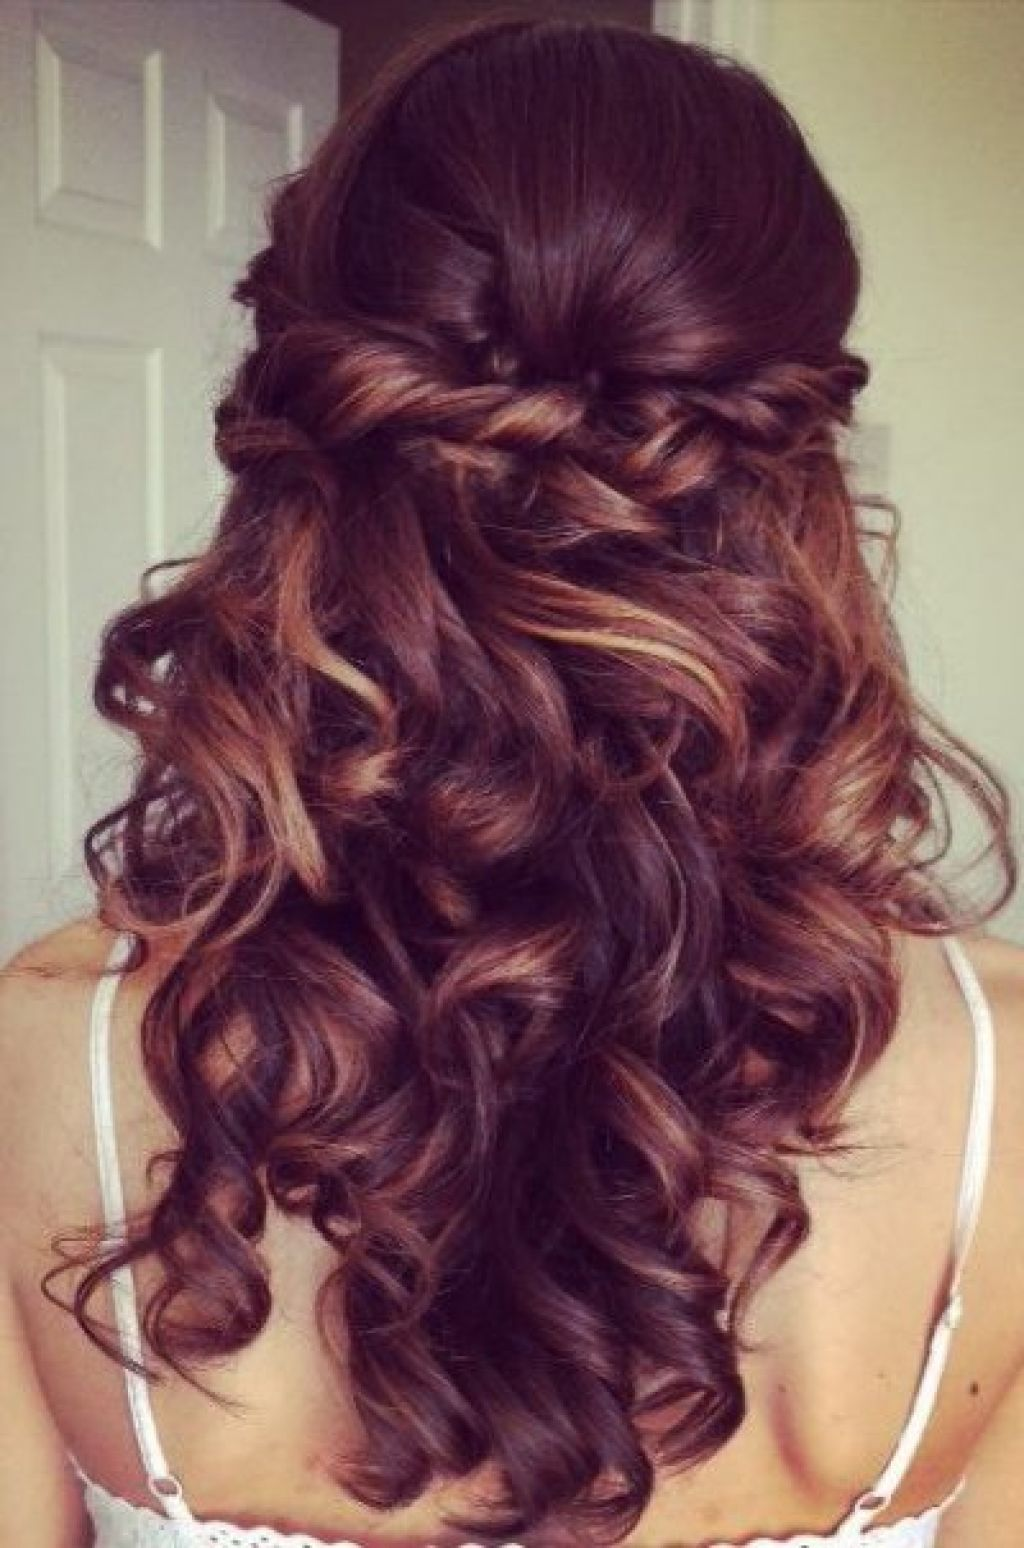 Elegant Curly Half Updo Prom Hairstyle With Bouncy Long Curls Hairstyles I Will Never Be Able